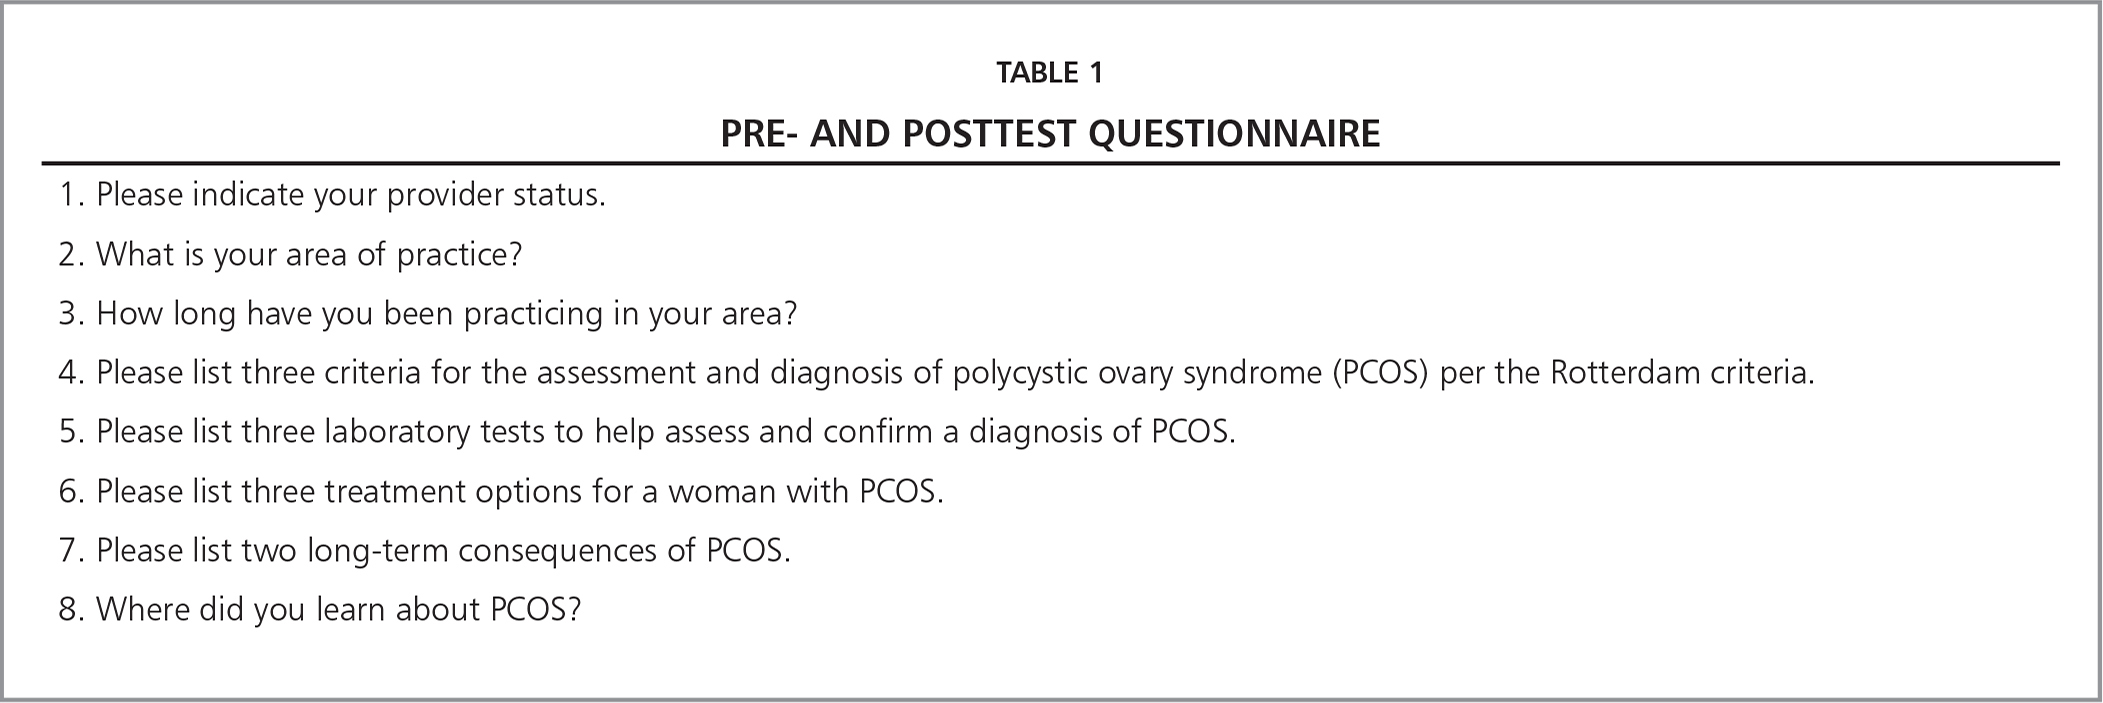 Pre- and Posttest Questionnaire